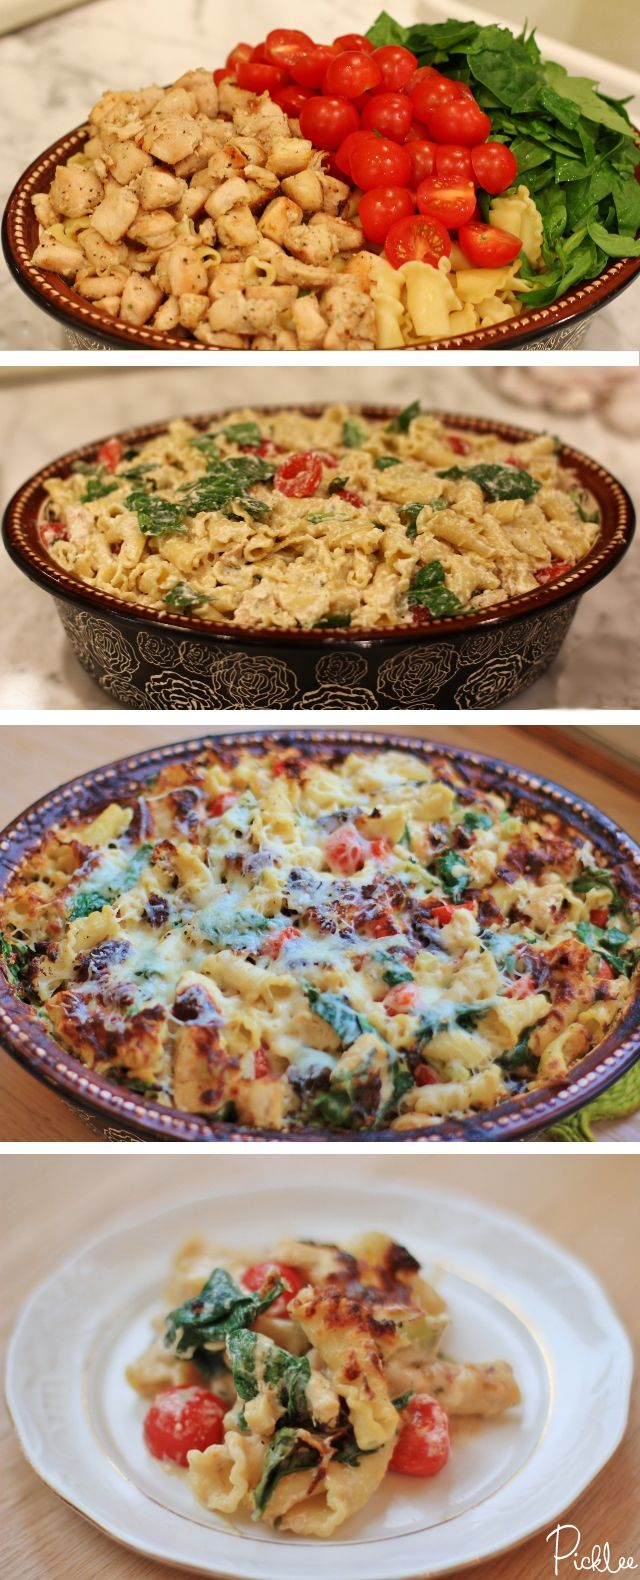 BEST WEEKNIGHT MEAL! The Chicken + Spinach + Tomato Pasta Bake...